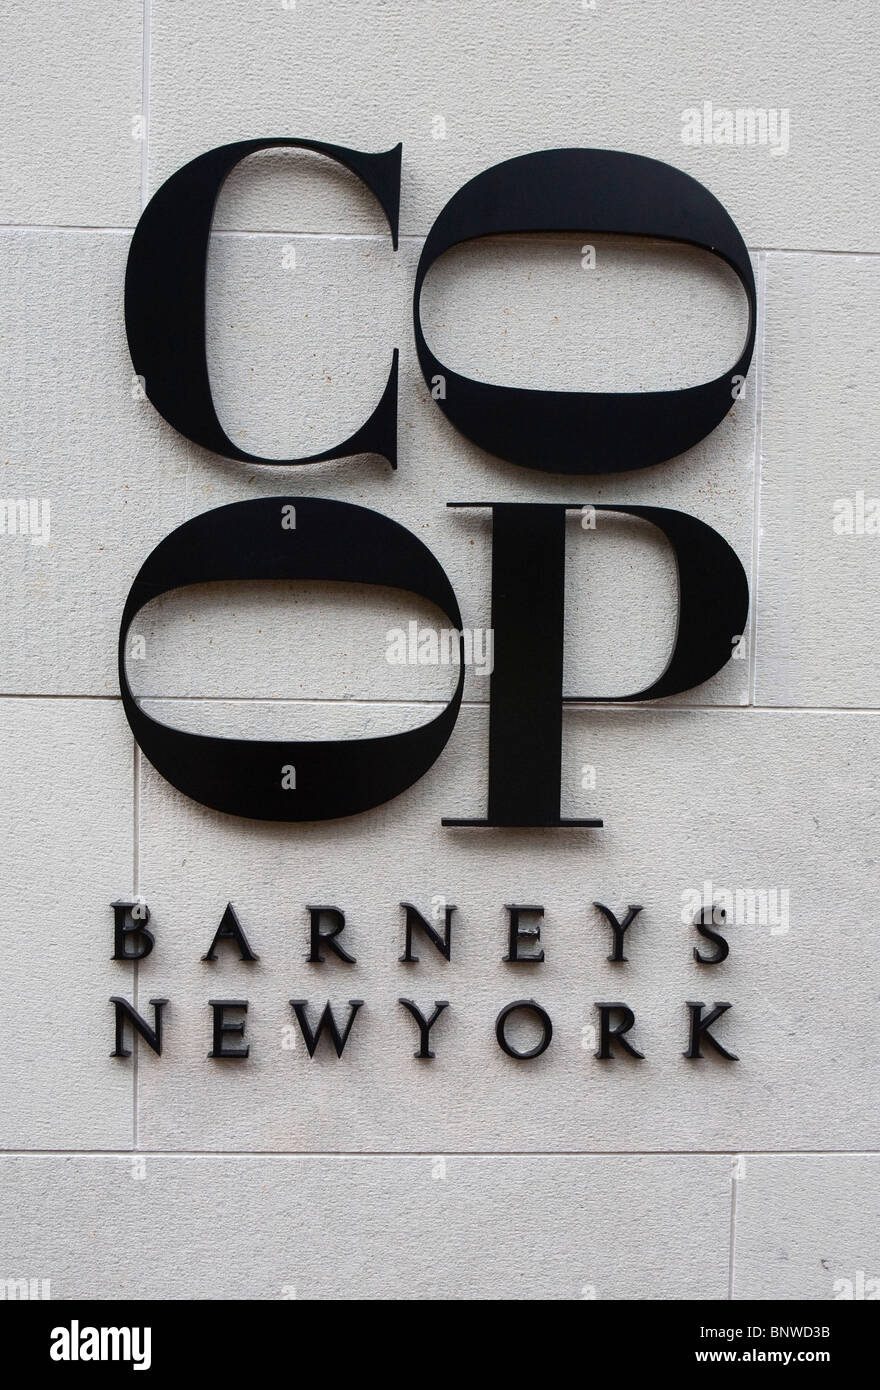 A Barney's New Yorck Co-Op retail store. - Stock Image